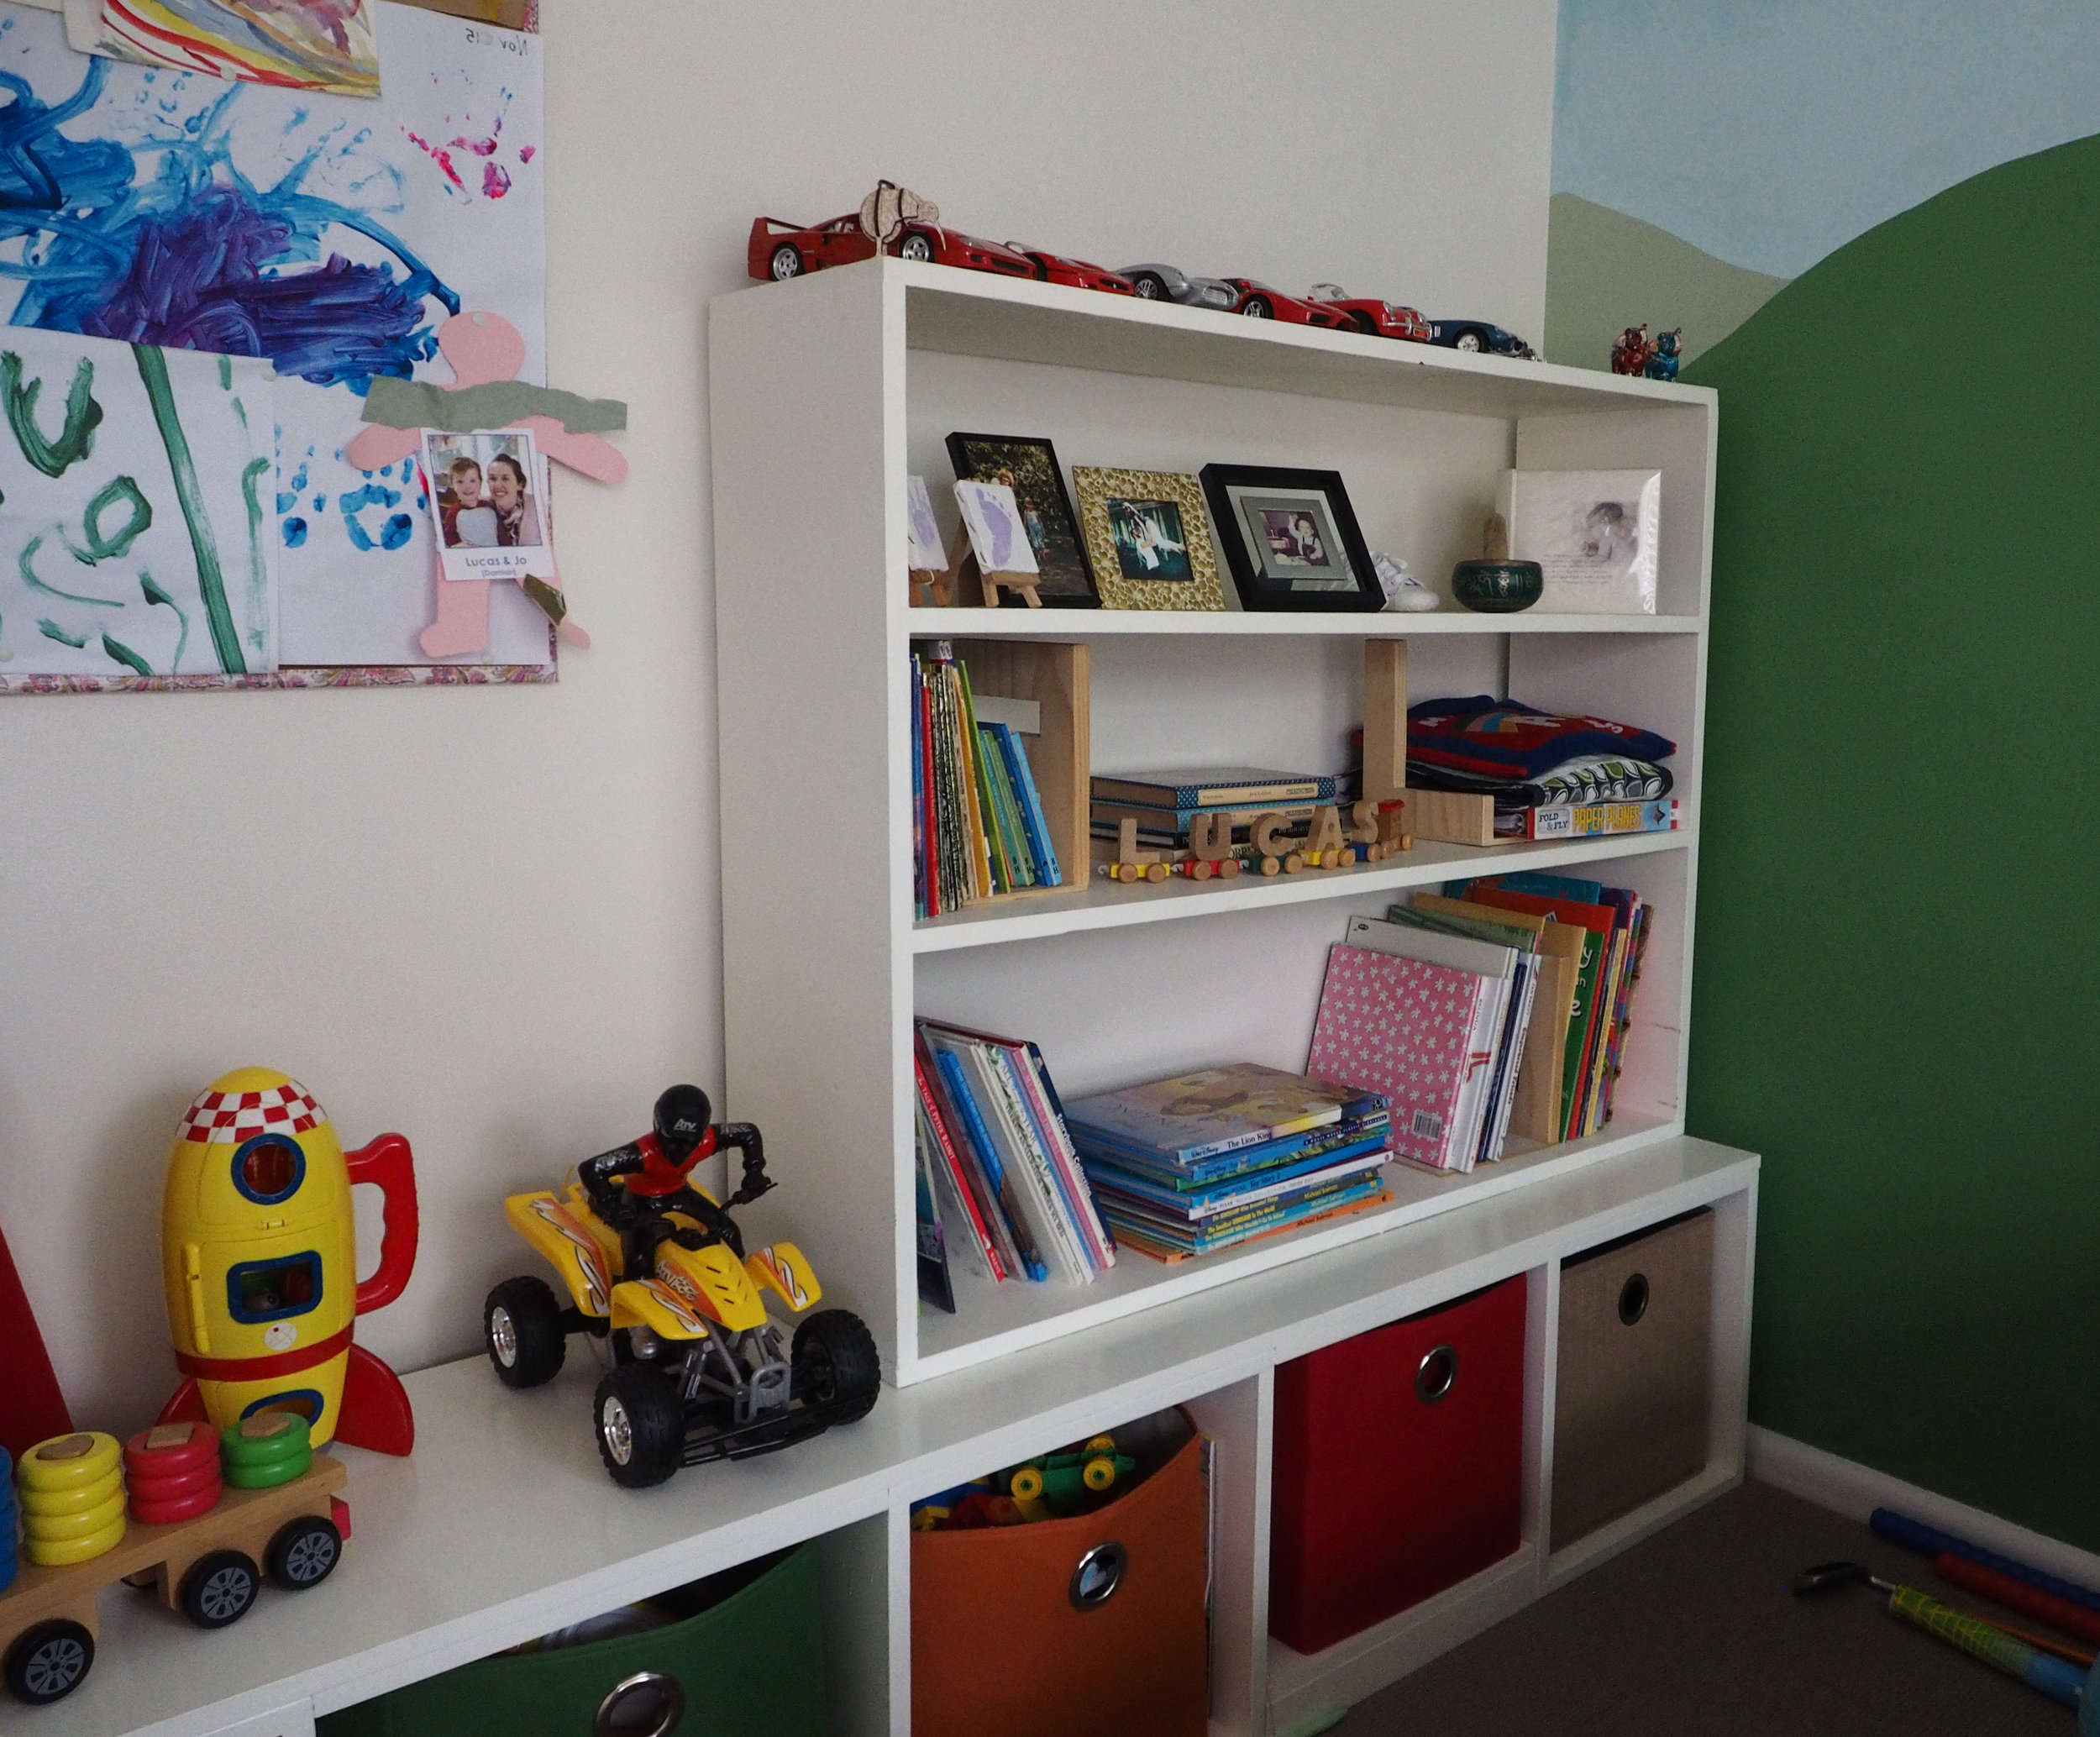 Kids bedroom decor and toy storage - The Organised You